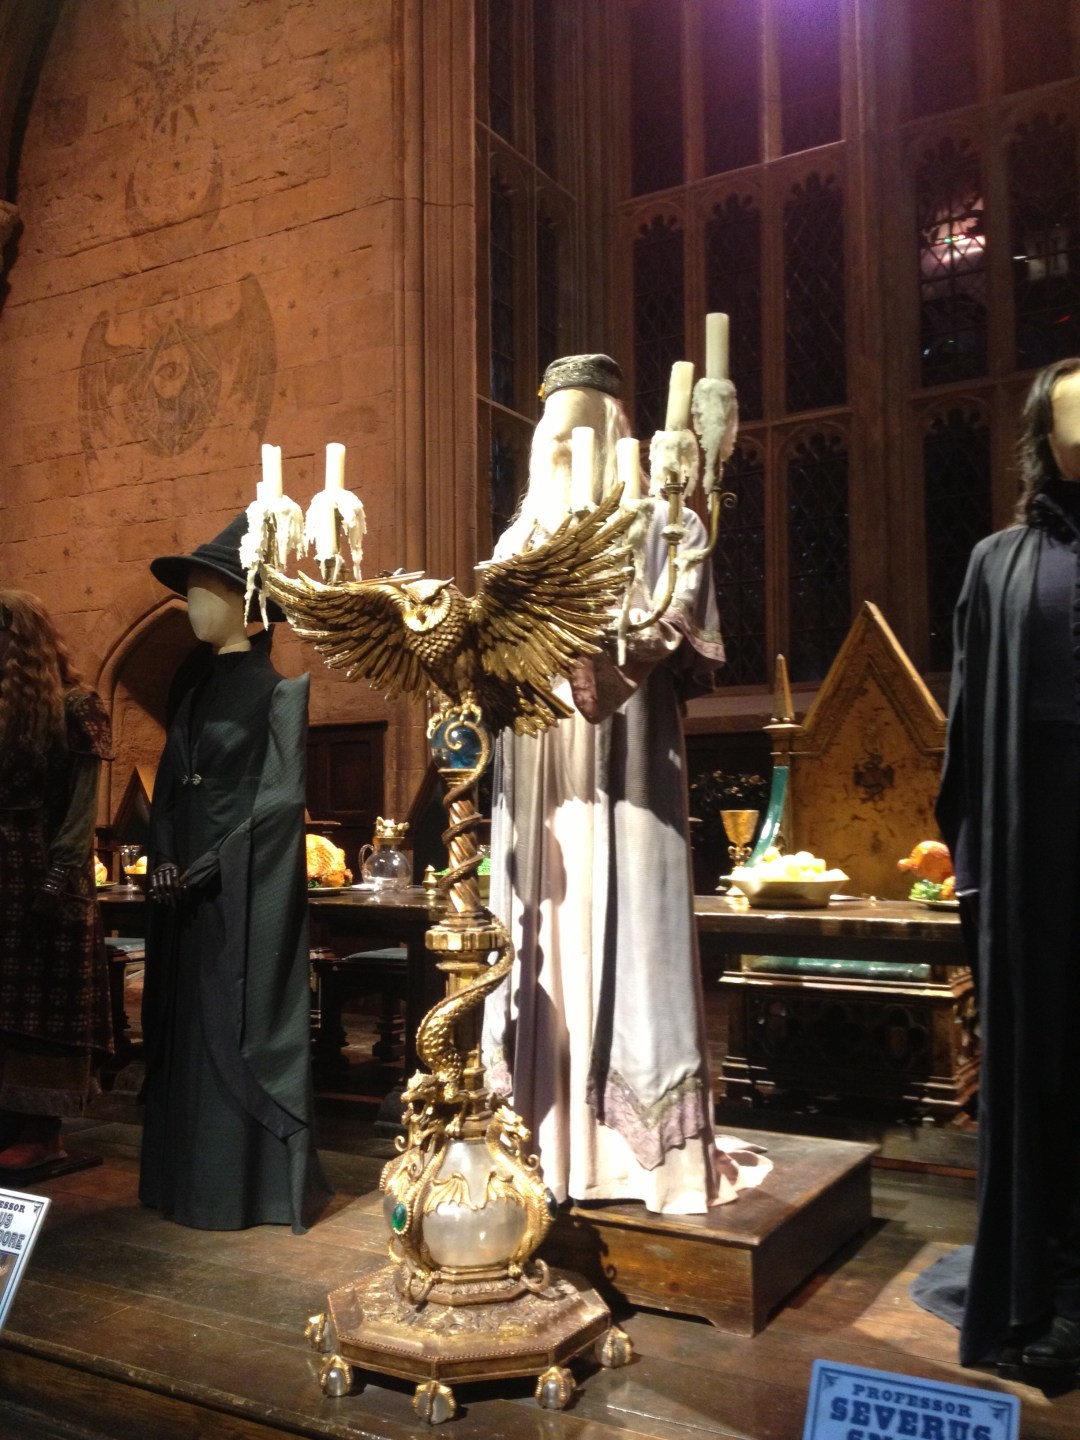 Dumbledore costume at Warner Brothers Studio: The Making of Harry Potter Tour